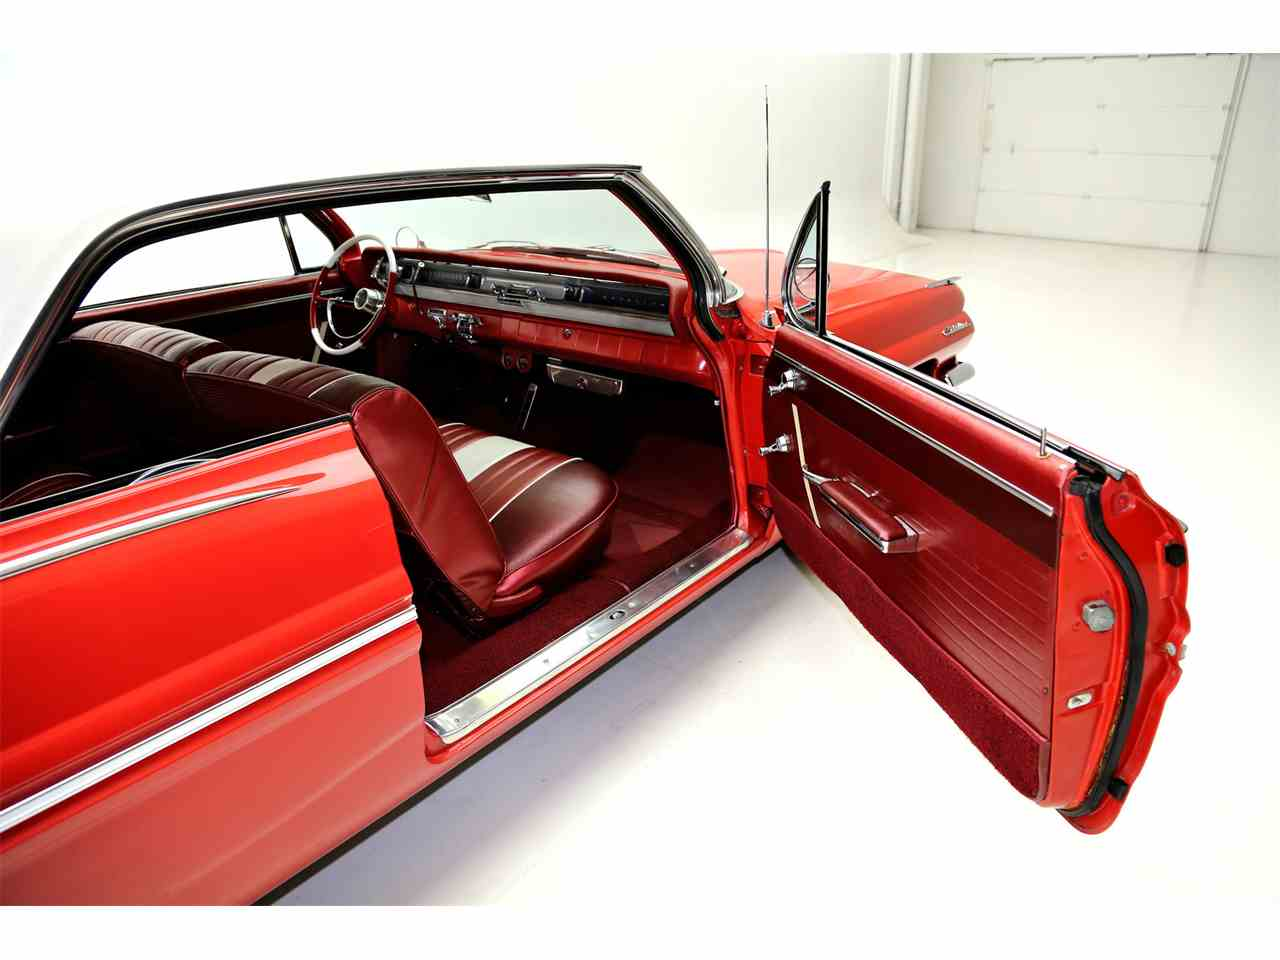 Large Picture of Classic '62 Pontiac Catalina located in Des Moines Iowa - $29,900.00 - JRF9